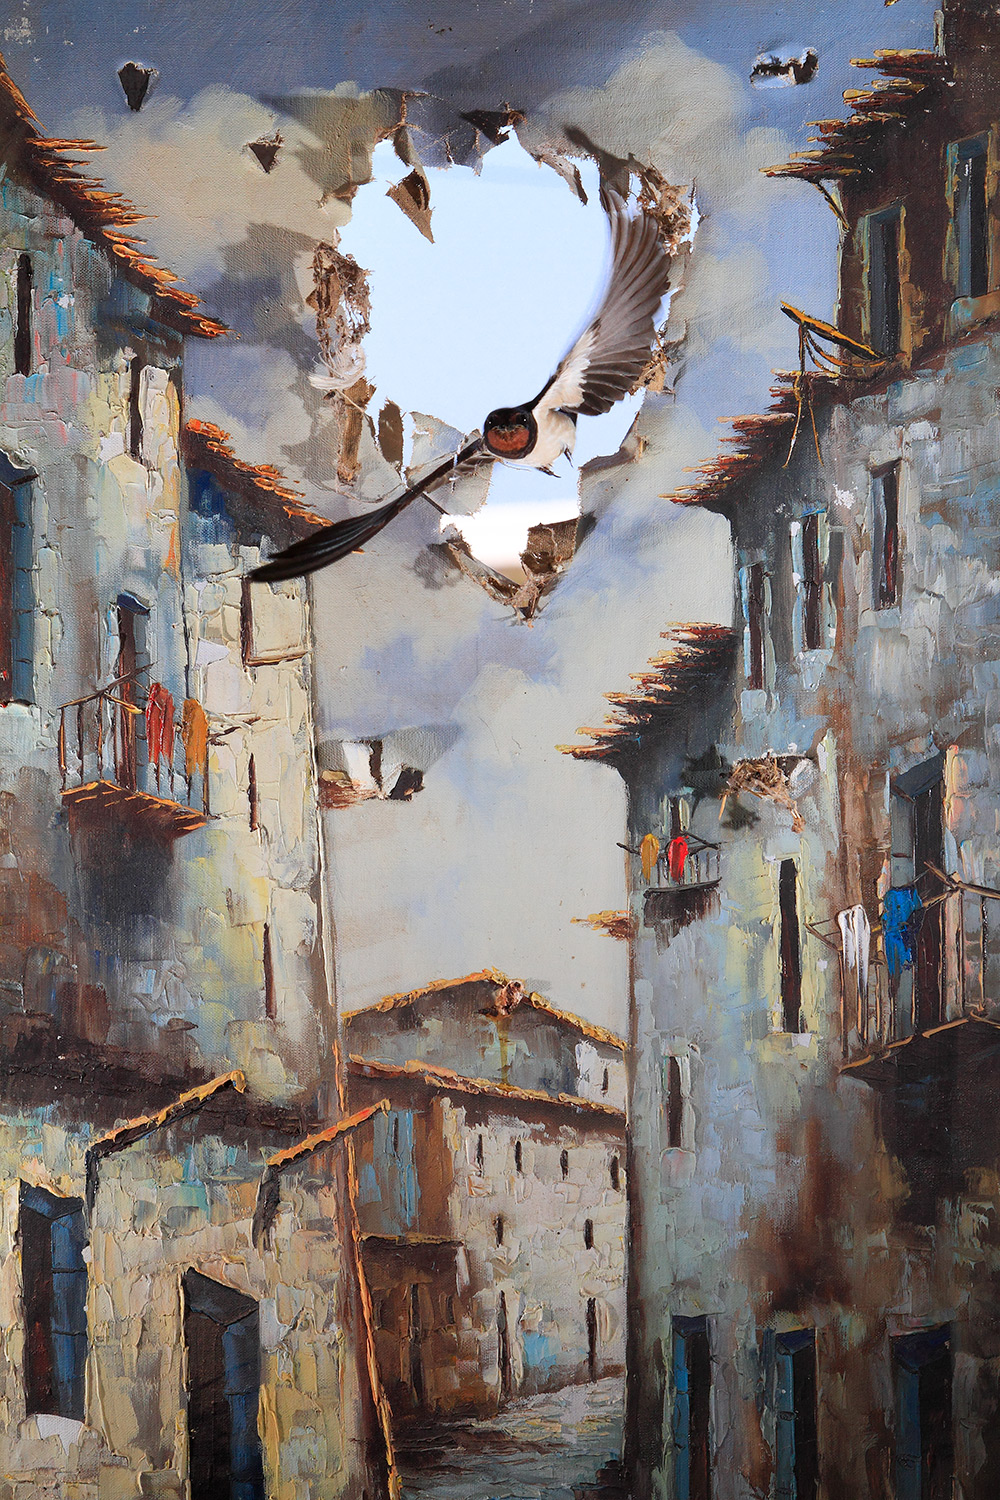 Life comes to art , Juan Tapia, Spain. Impressions, WINNER. Story .